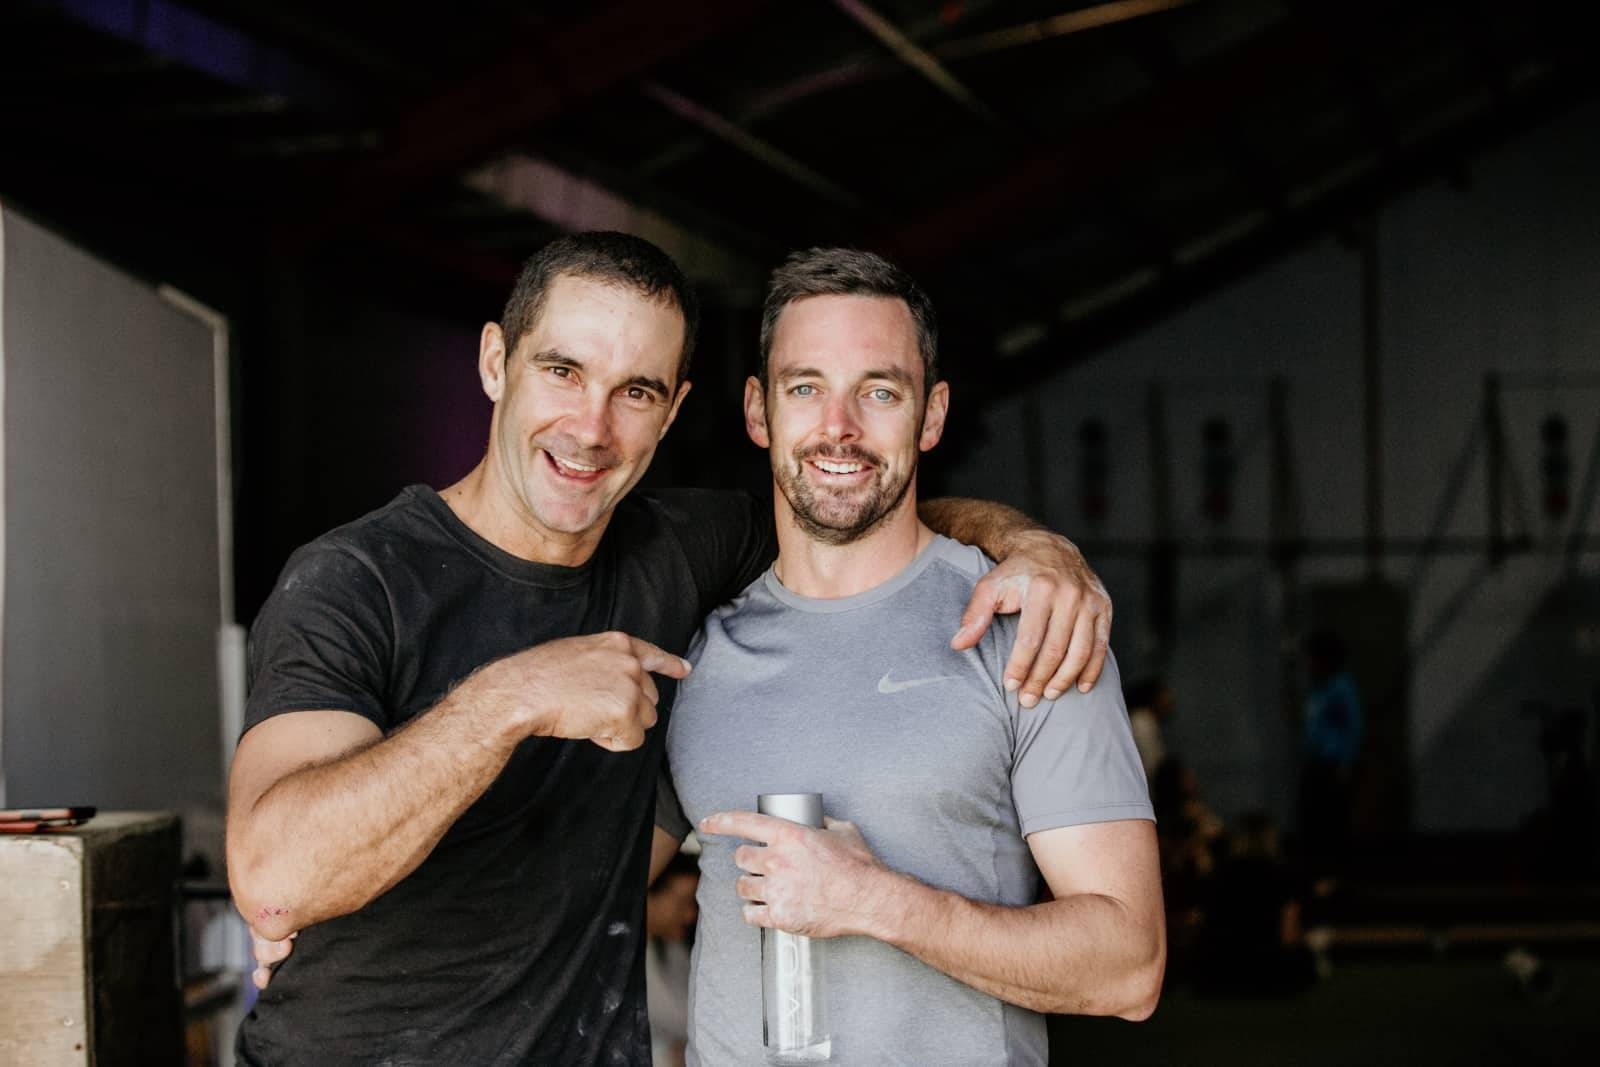 Fitter, Happier, Healthier - Your Key to Success in the Gym!